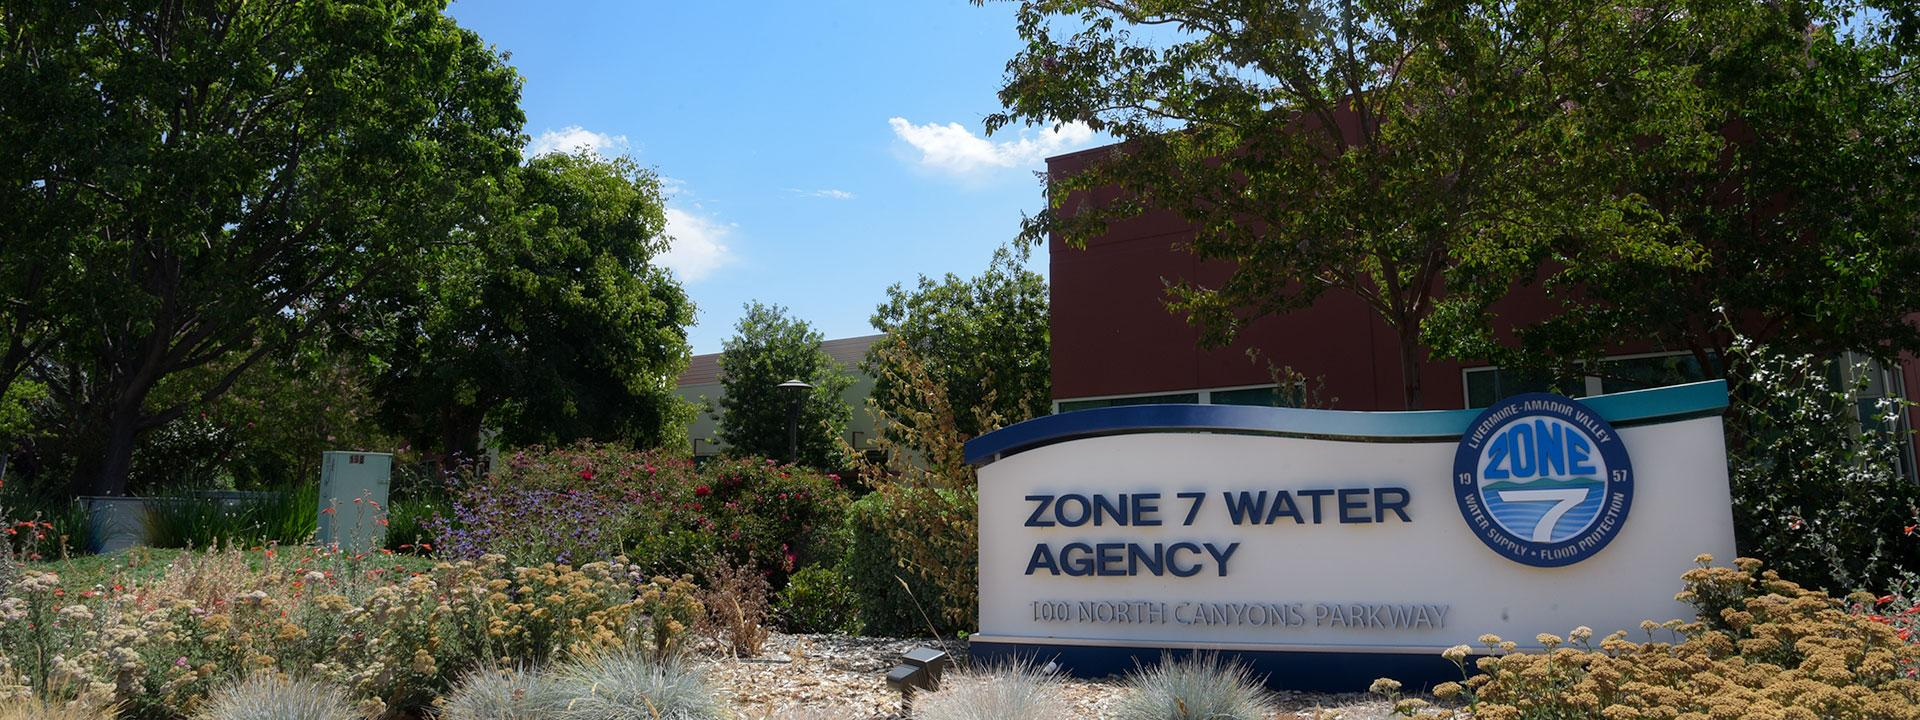 The Zone 7 Water Agency Headquarters monument sign in front of trees and a blue sky in the background